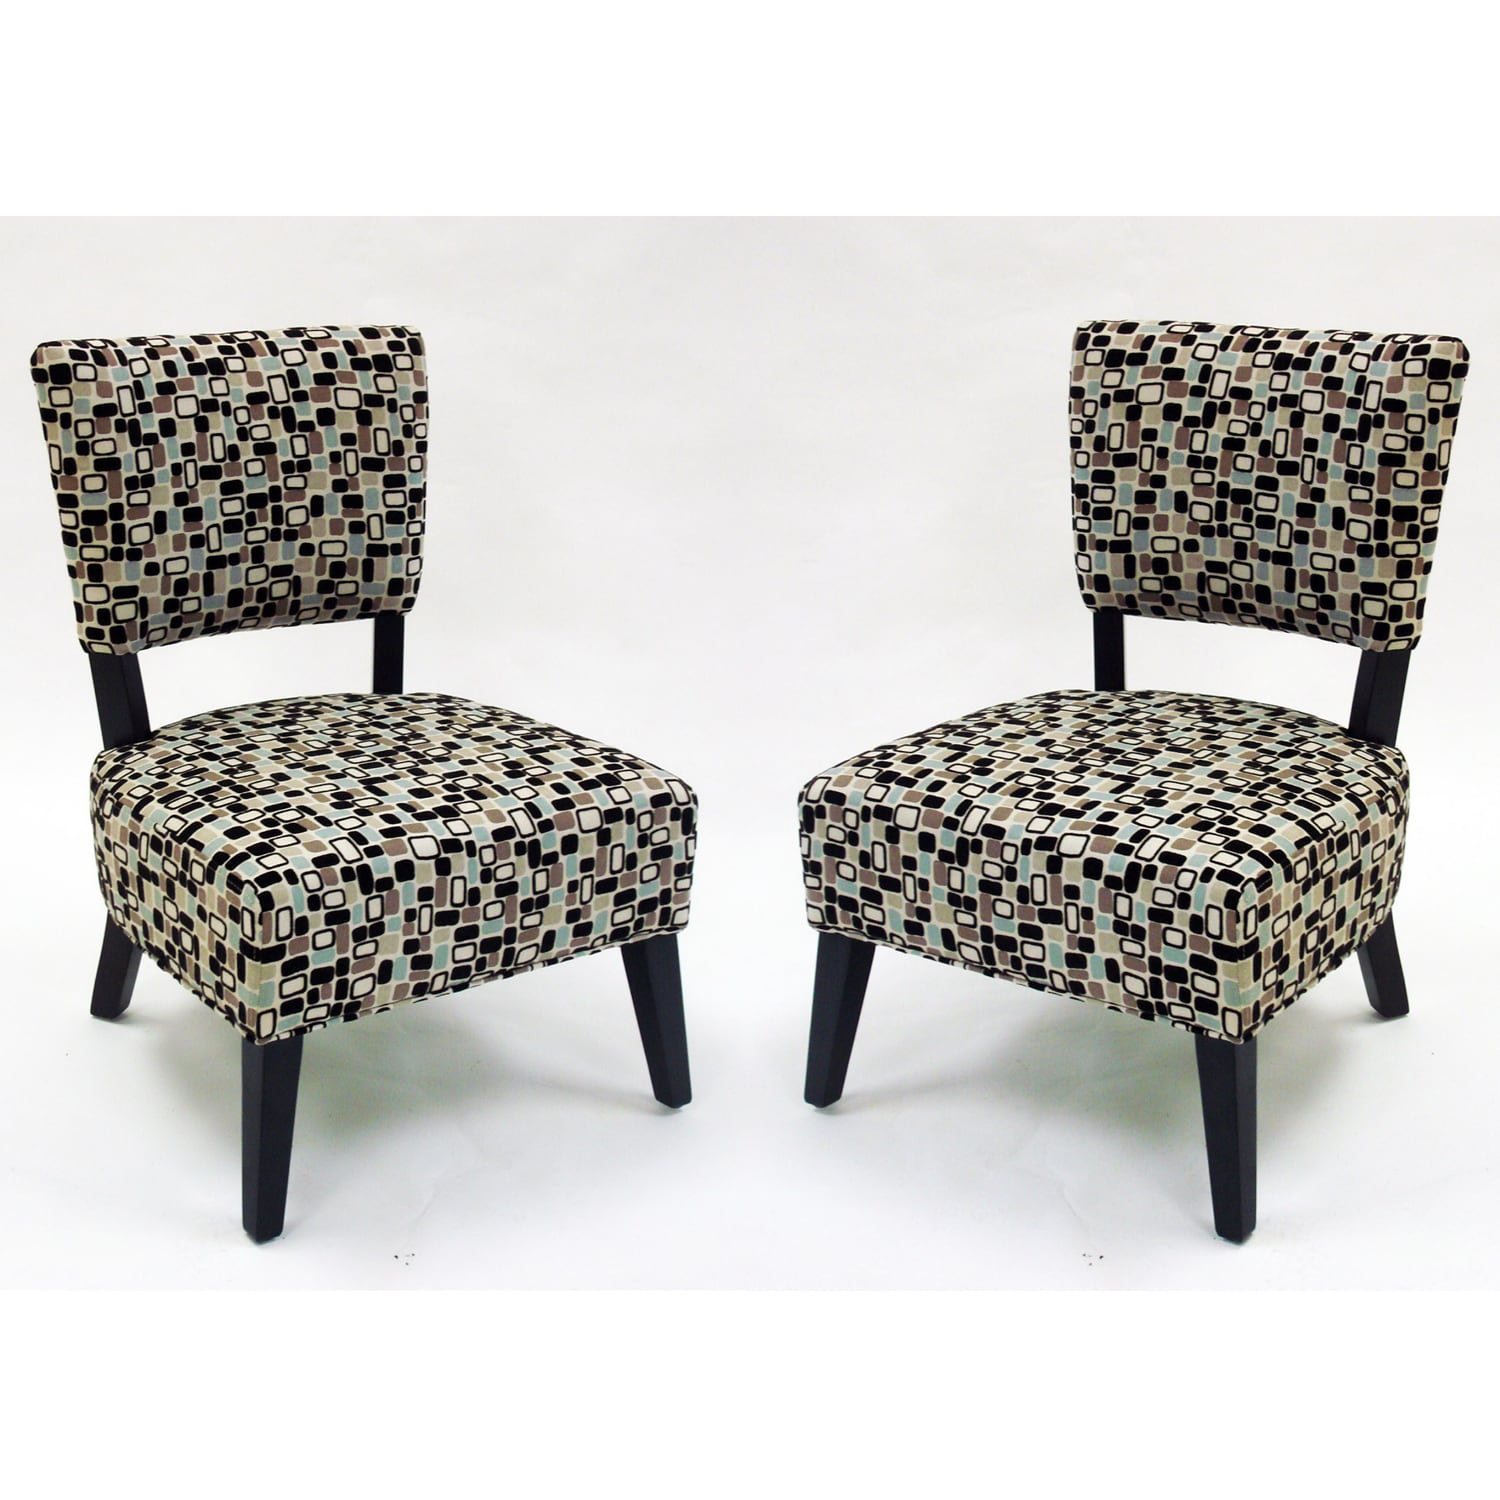 accent chairs under 150 college dorm room geometric fabric modern set of 2 free